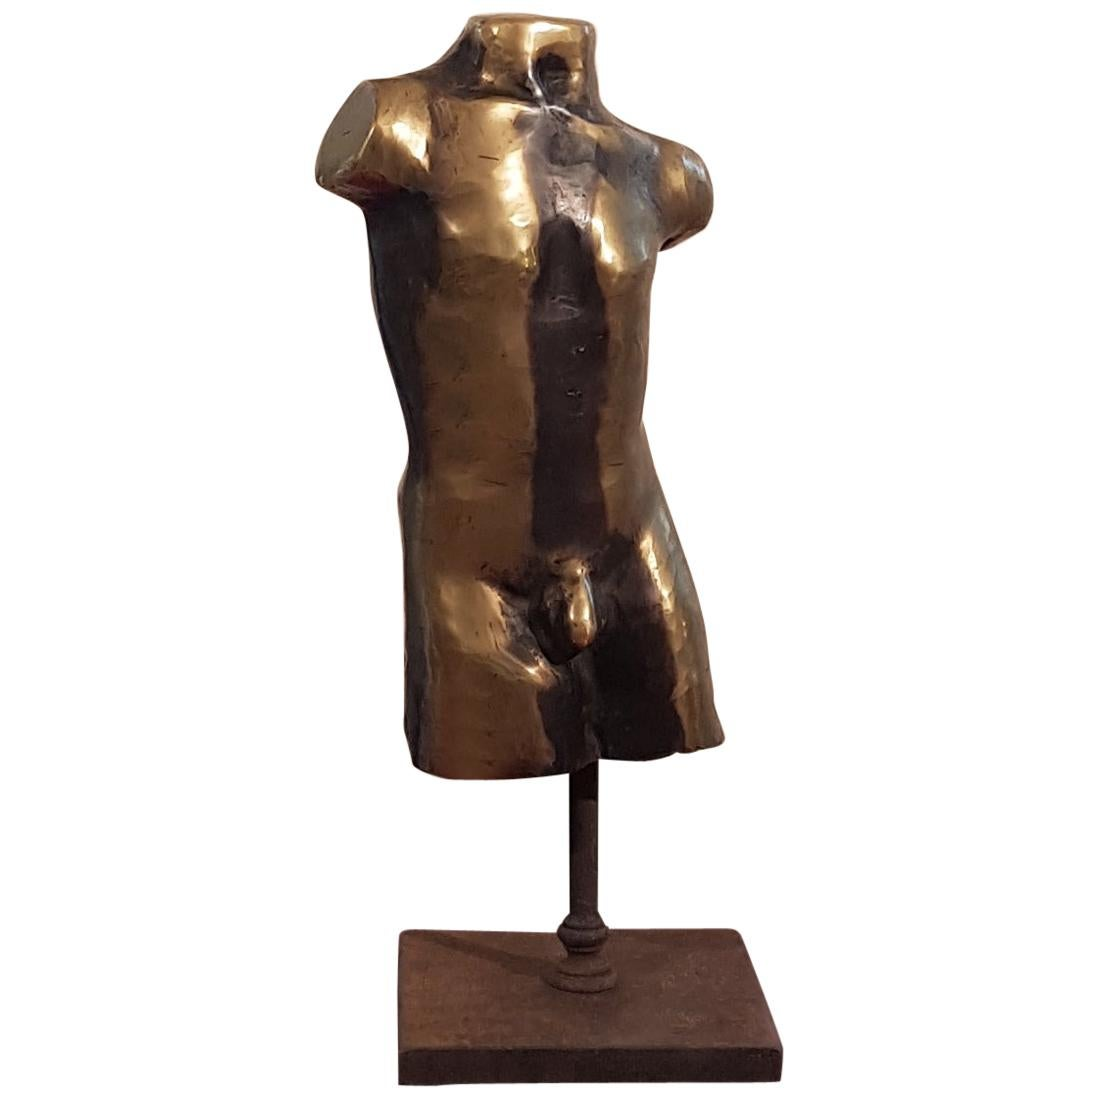 Classical Golden Bronze Man Nude Sculpture on a Cast Iron Base, Italy, 1950s